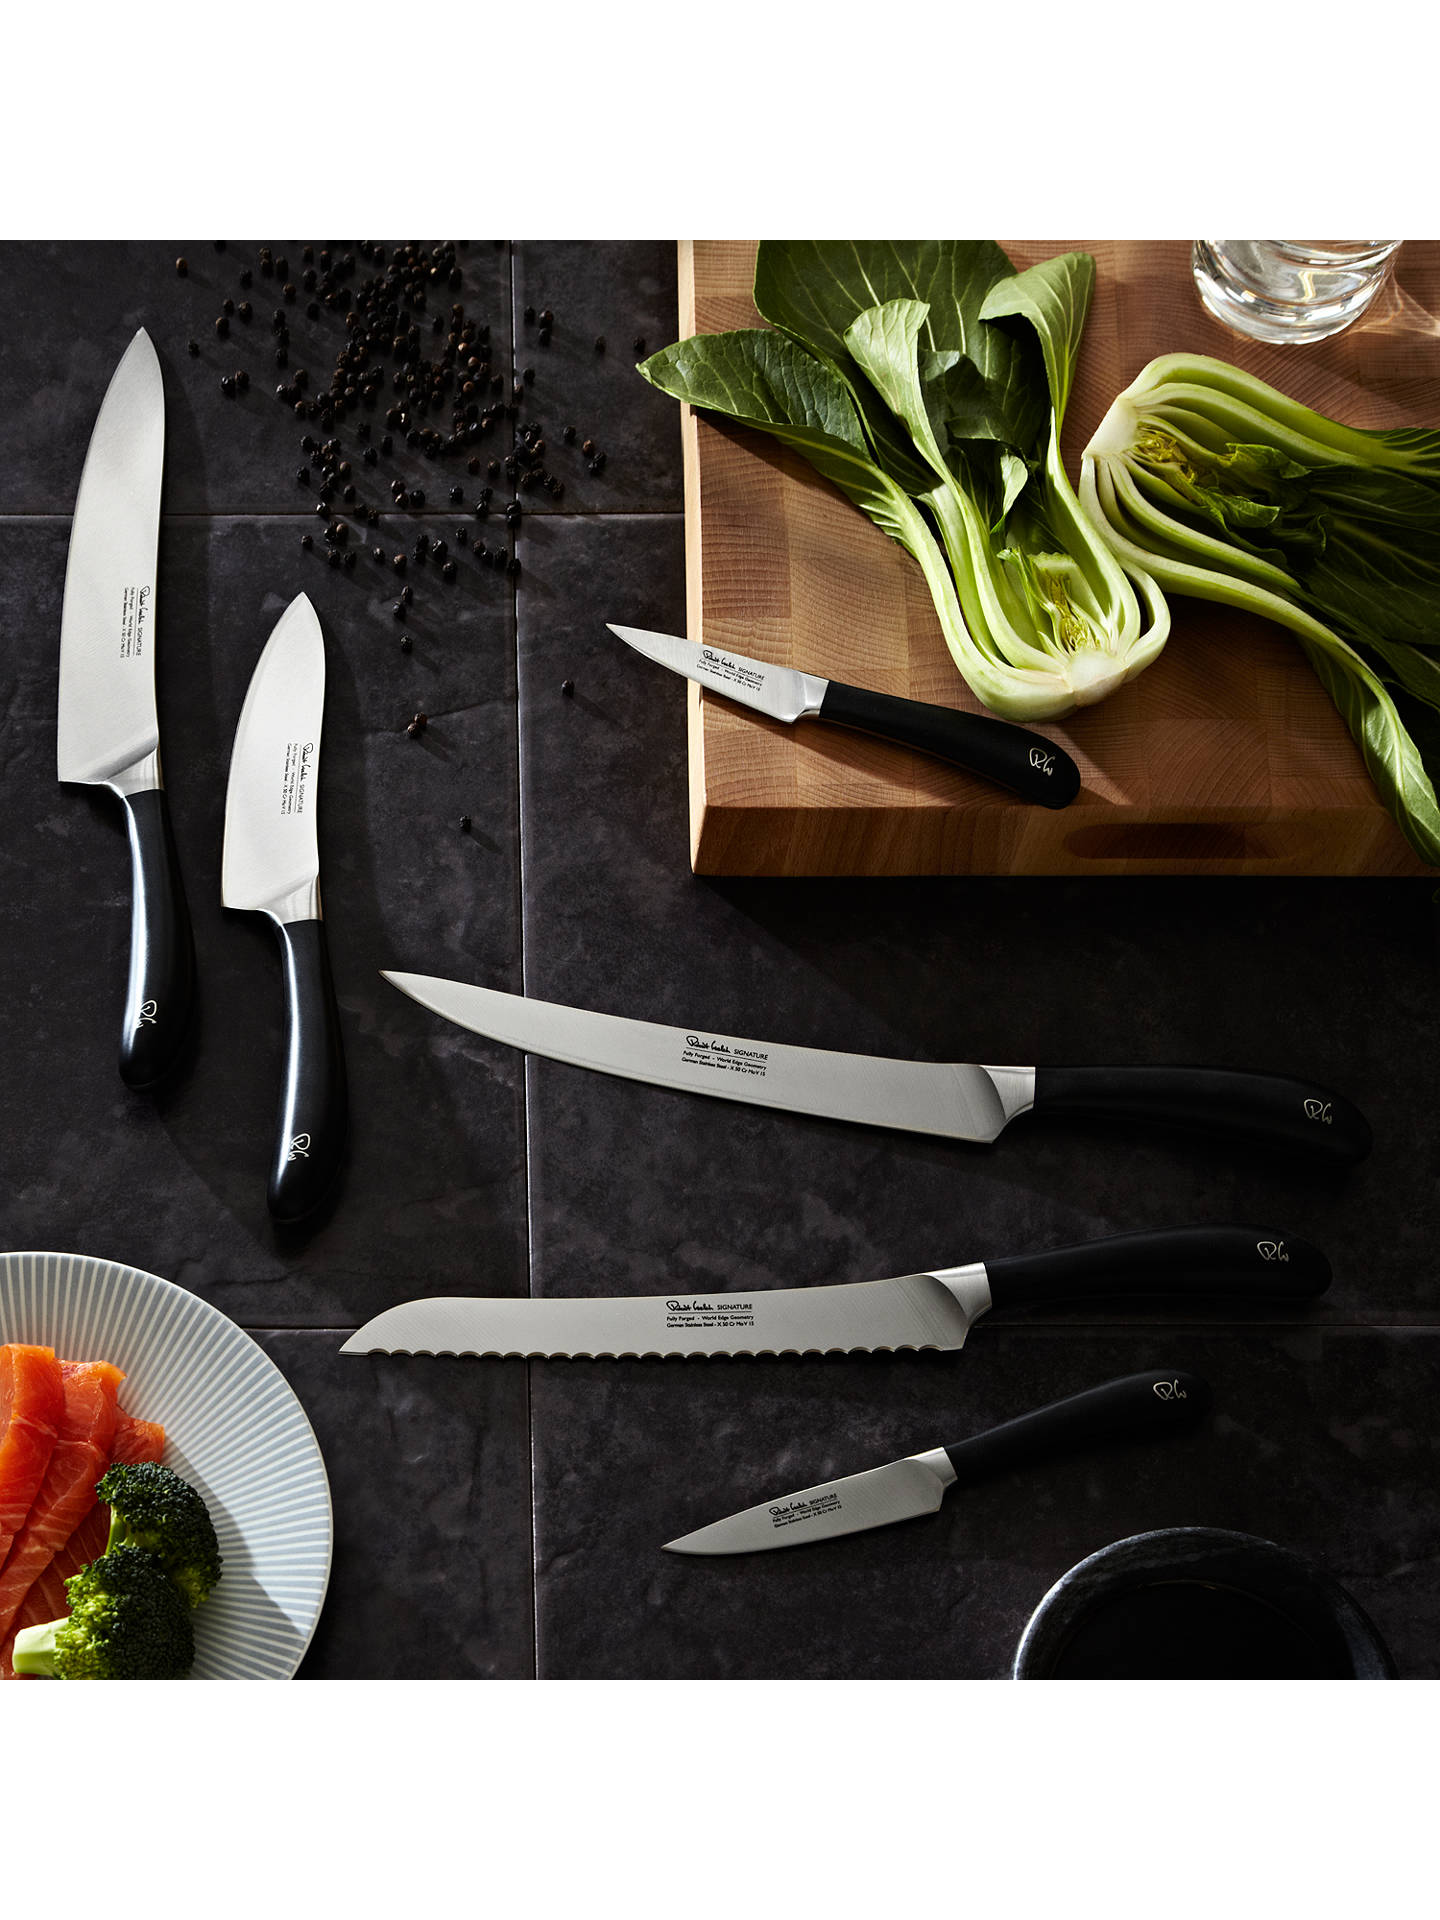 BuyRobert Welch Signature Santoku Knife, 14cm Online at johnlewis.com